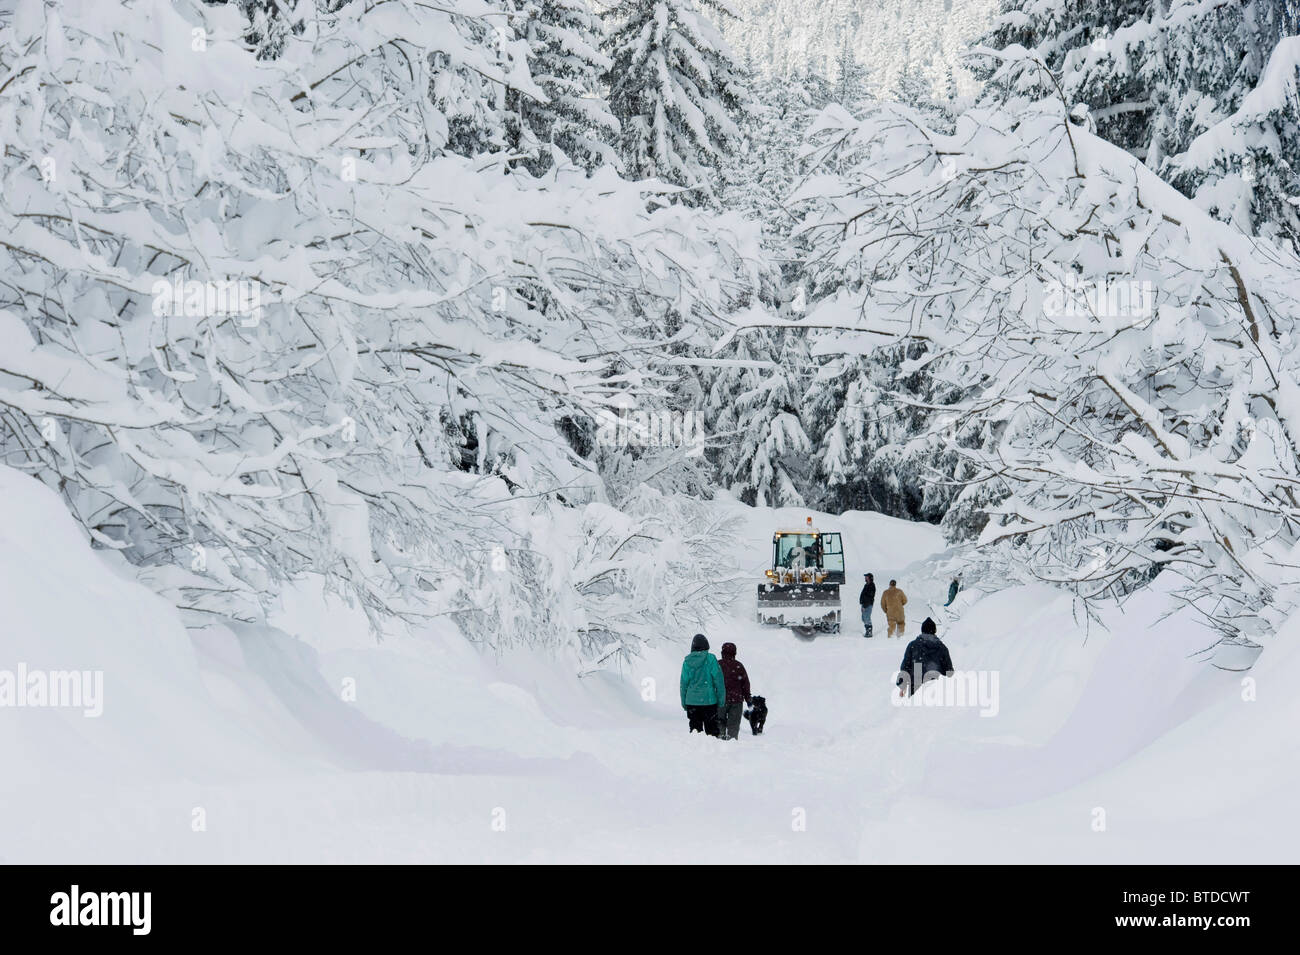 Stranded Girdwood residents look for help from a snowplow driver after a deep snowstorm, Southcentral Alaska, Winter Stock Photo